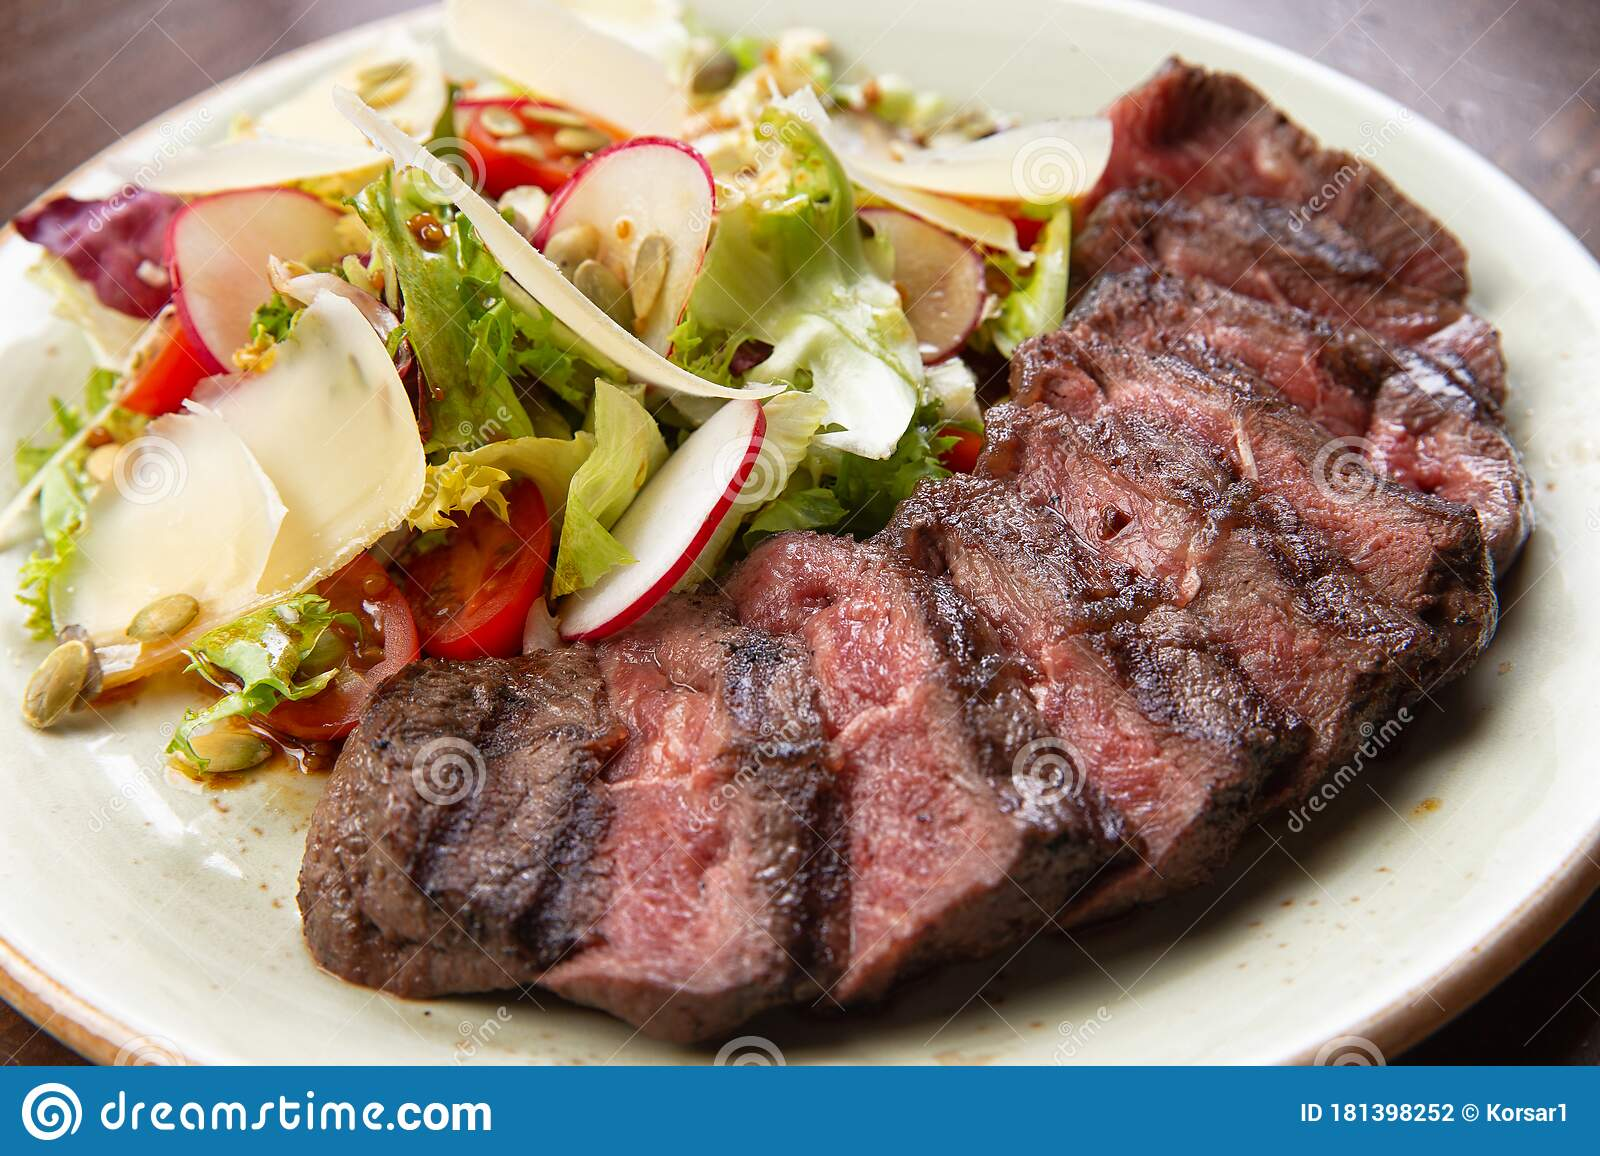 Salad And Sliced Steak In A Plate Stock Photo Image Of Plate Salad 181398252